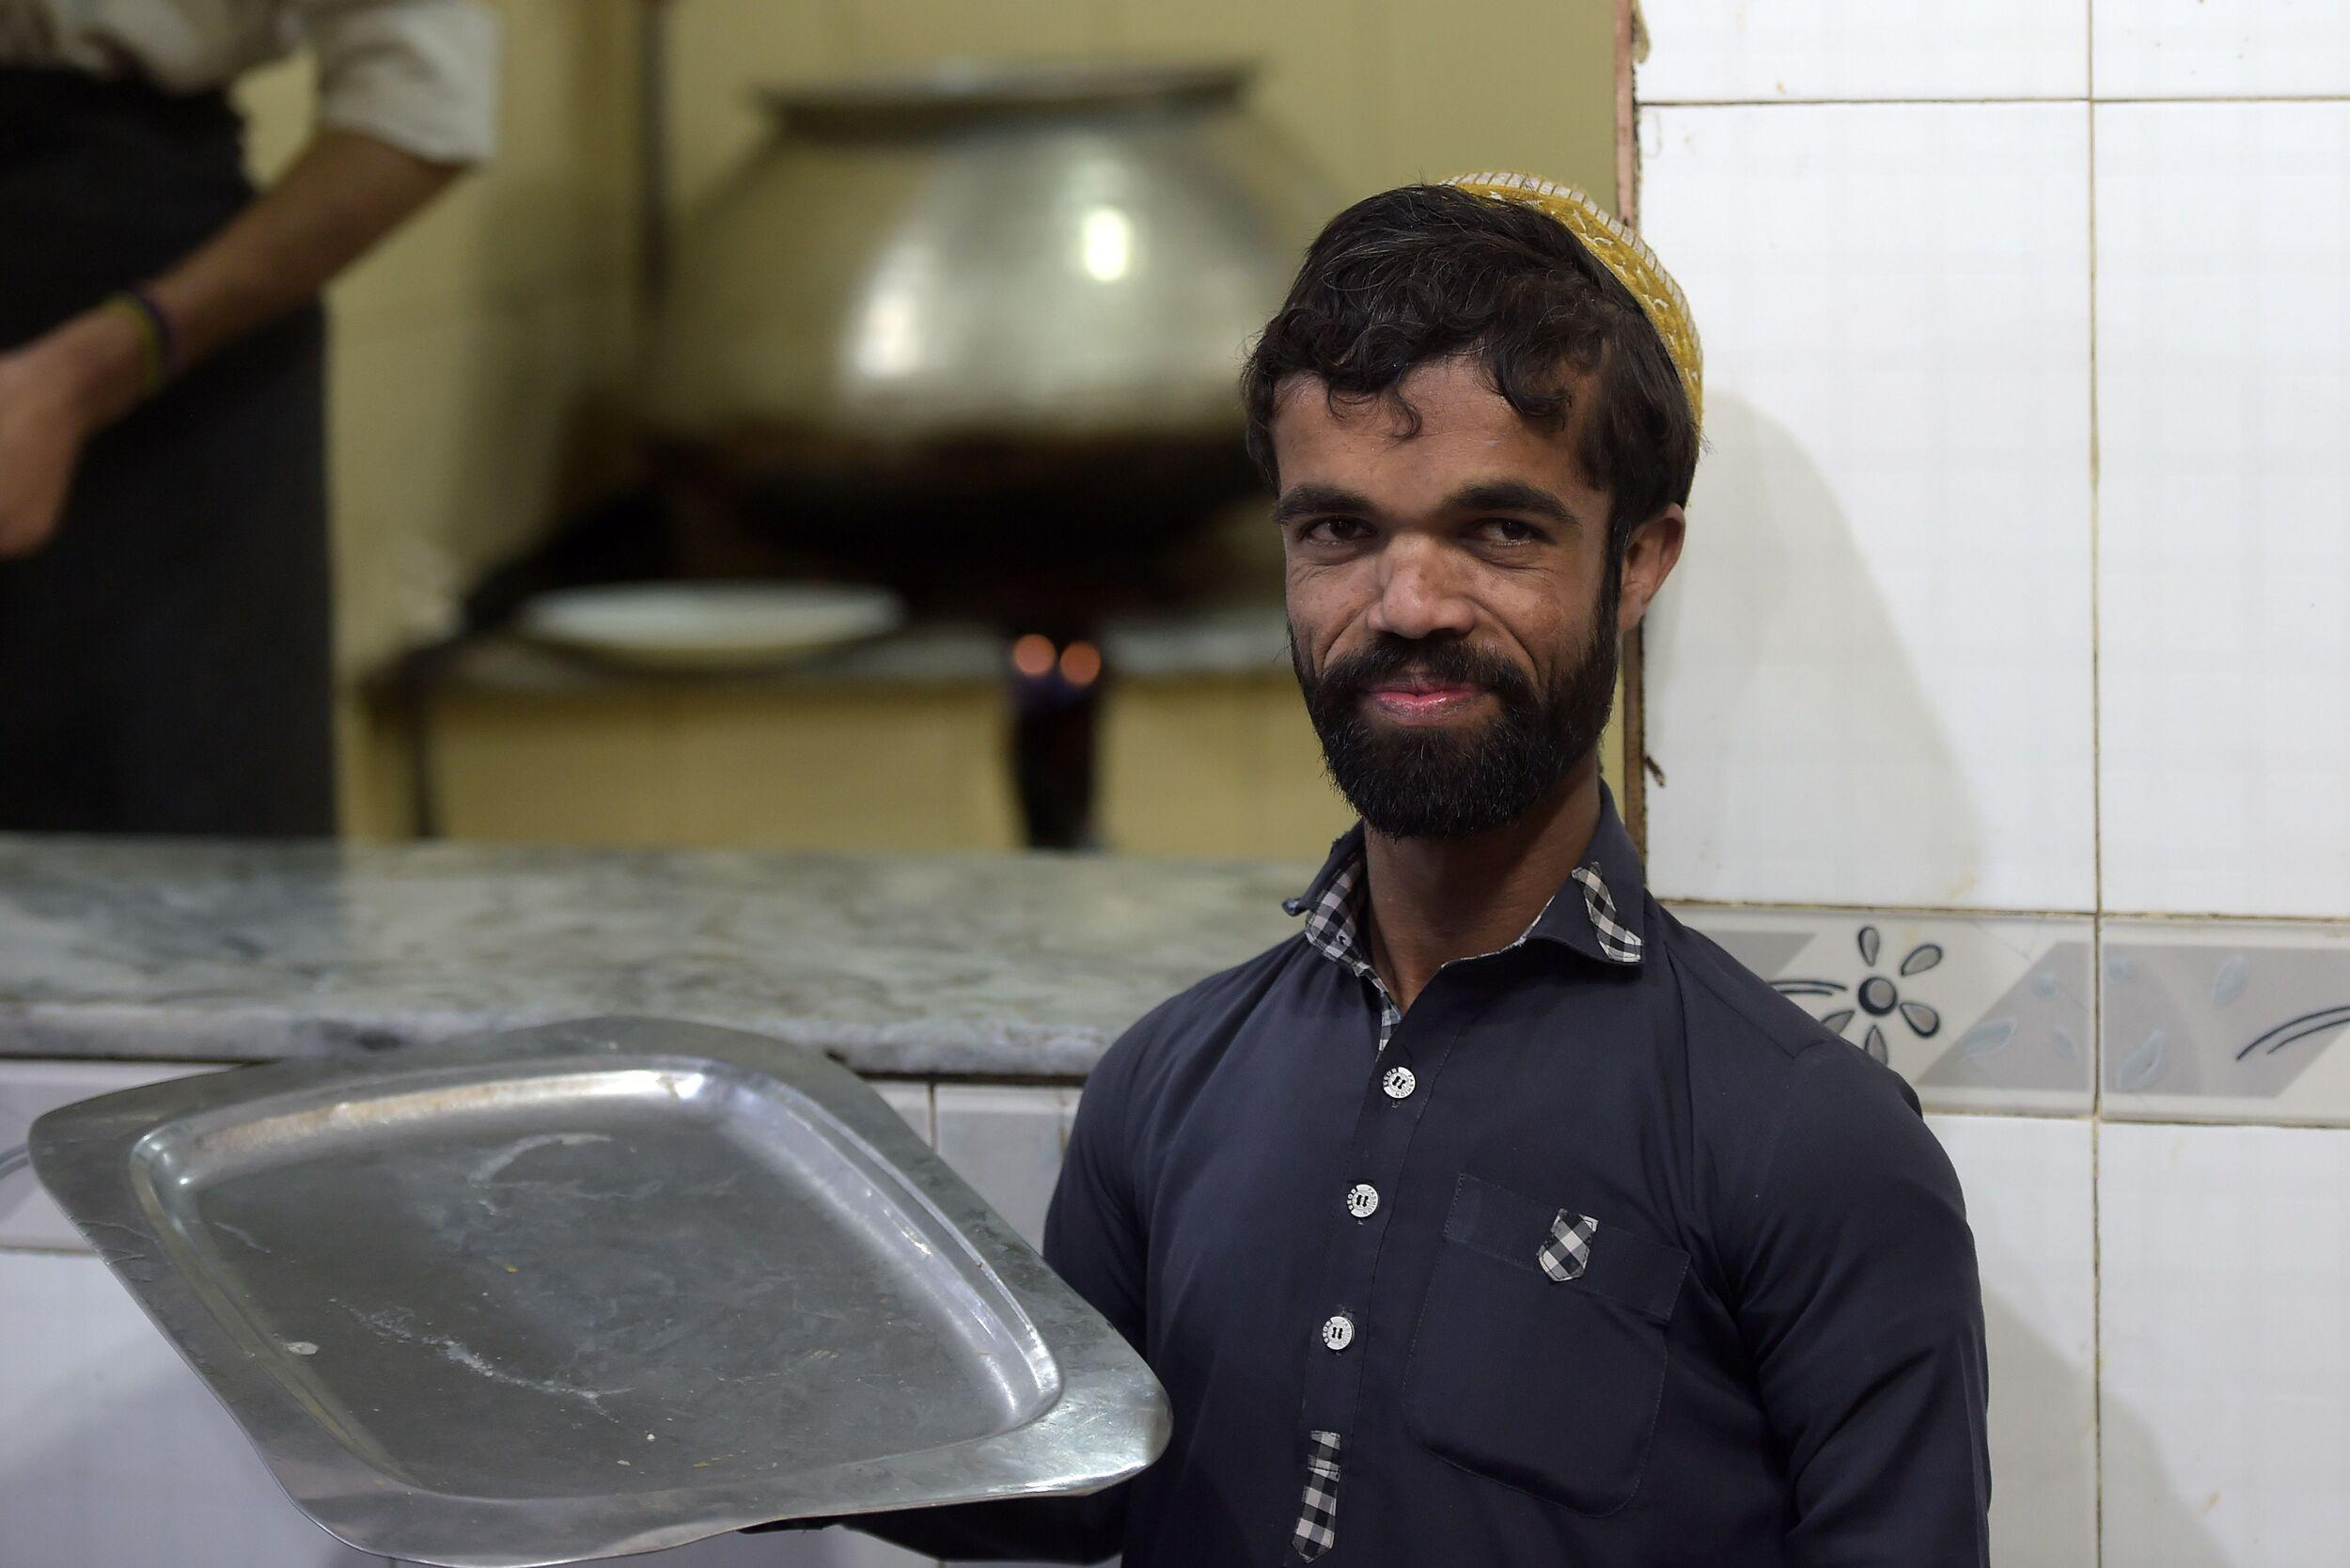 In this picture taken on February 22, 2019, Rozi Khan, a 25-year-old Pakistani waiter who resembles US actor Peter Dinklage, looks on at Dilbar Hotel in Rawalpindi. - Rozi Khan had never heard of the Game of Thrones -- or its hugely popular character Tyrion Lannister -- until his striking resemblance to the dwarf anti-hero got heads turning at home. (Photo by AAMIR QURESHI / AFP) / To go with PAKISTAN-LIFESTYLE-TELEVISION-ENTERTAINMENT        (Photo credit should read AAMIR QURESHI/AFP/Getty Images)